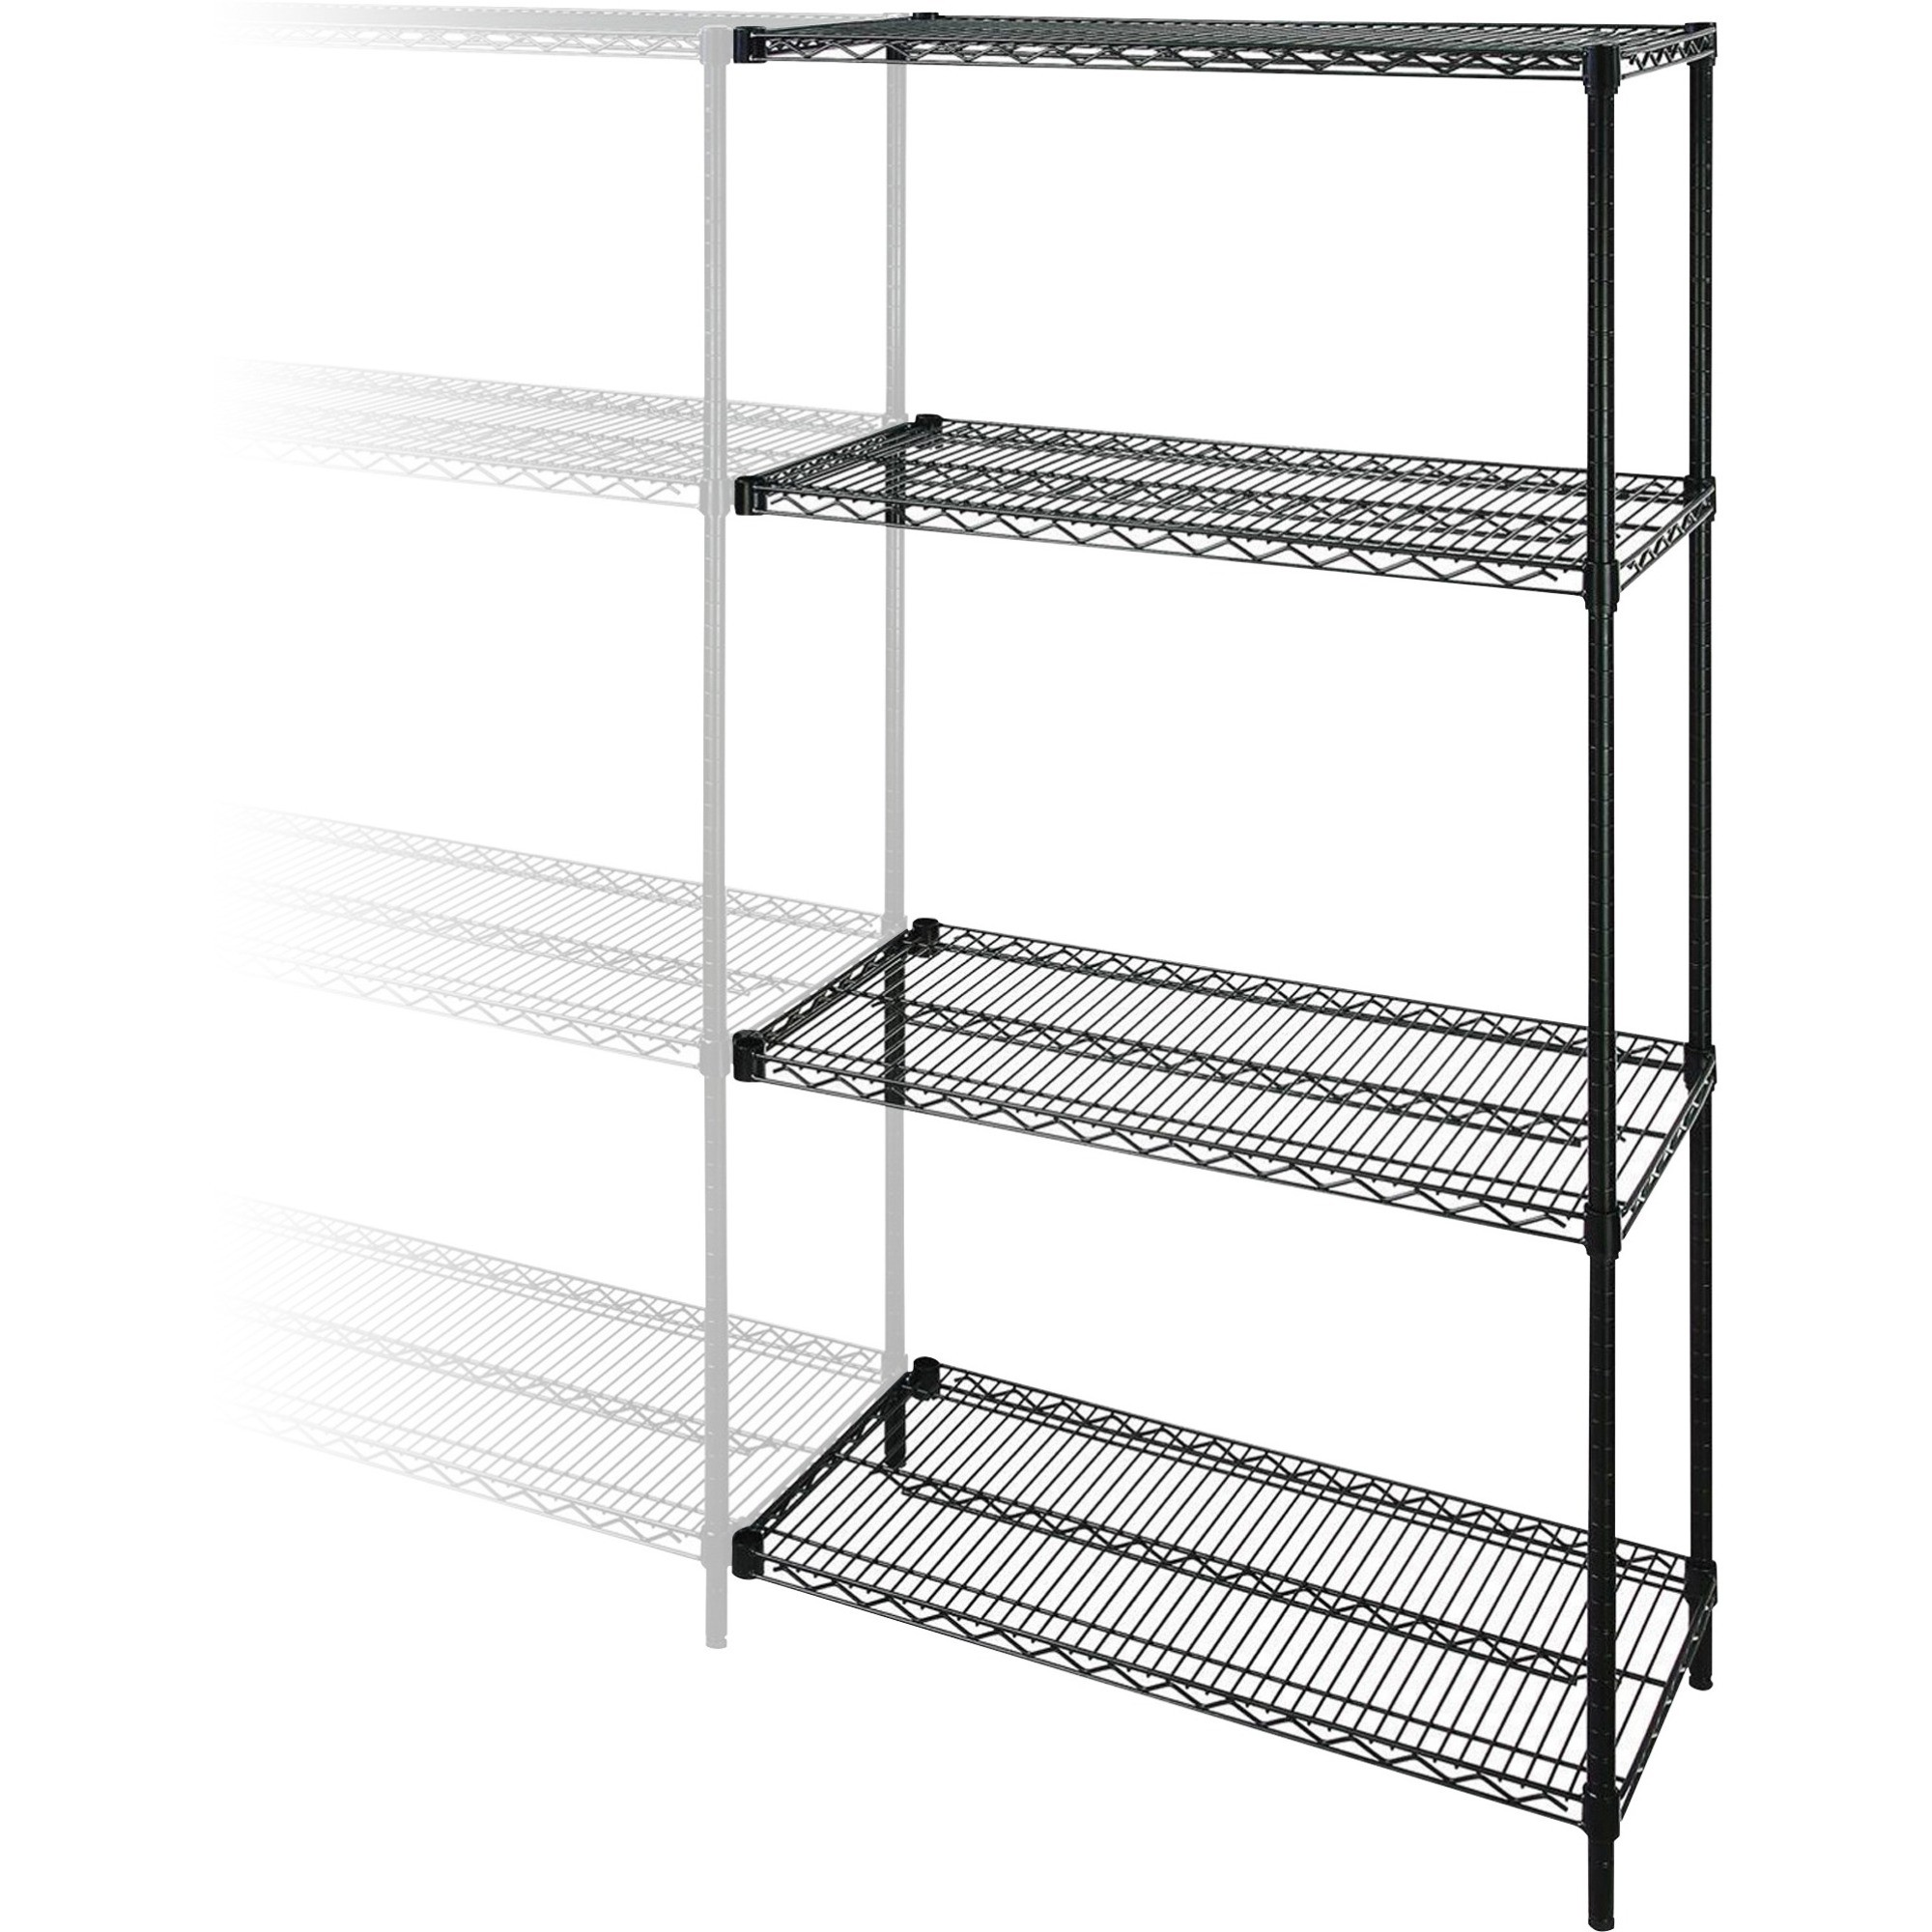 lorell industrial wire shelving units 48w x 18d x 72h black - Wire Shelving Units